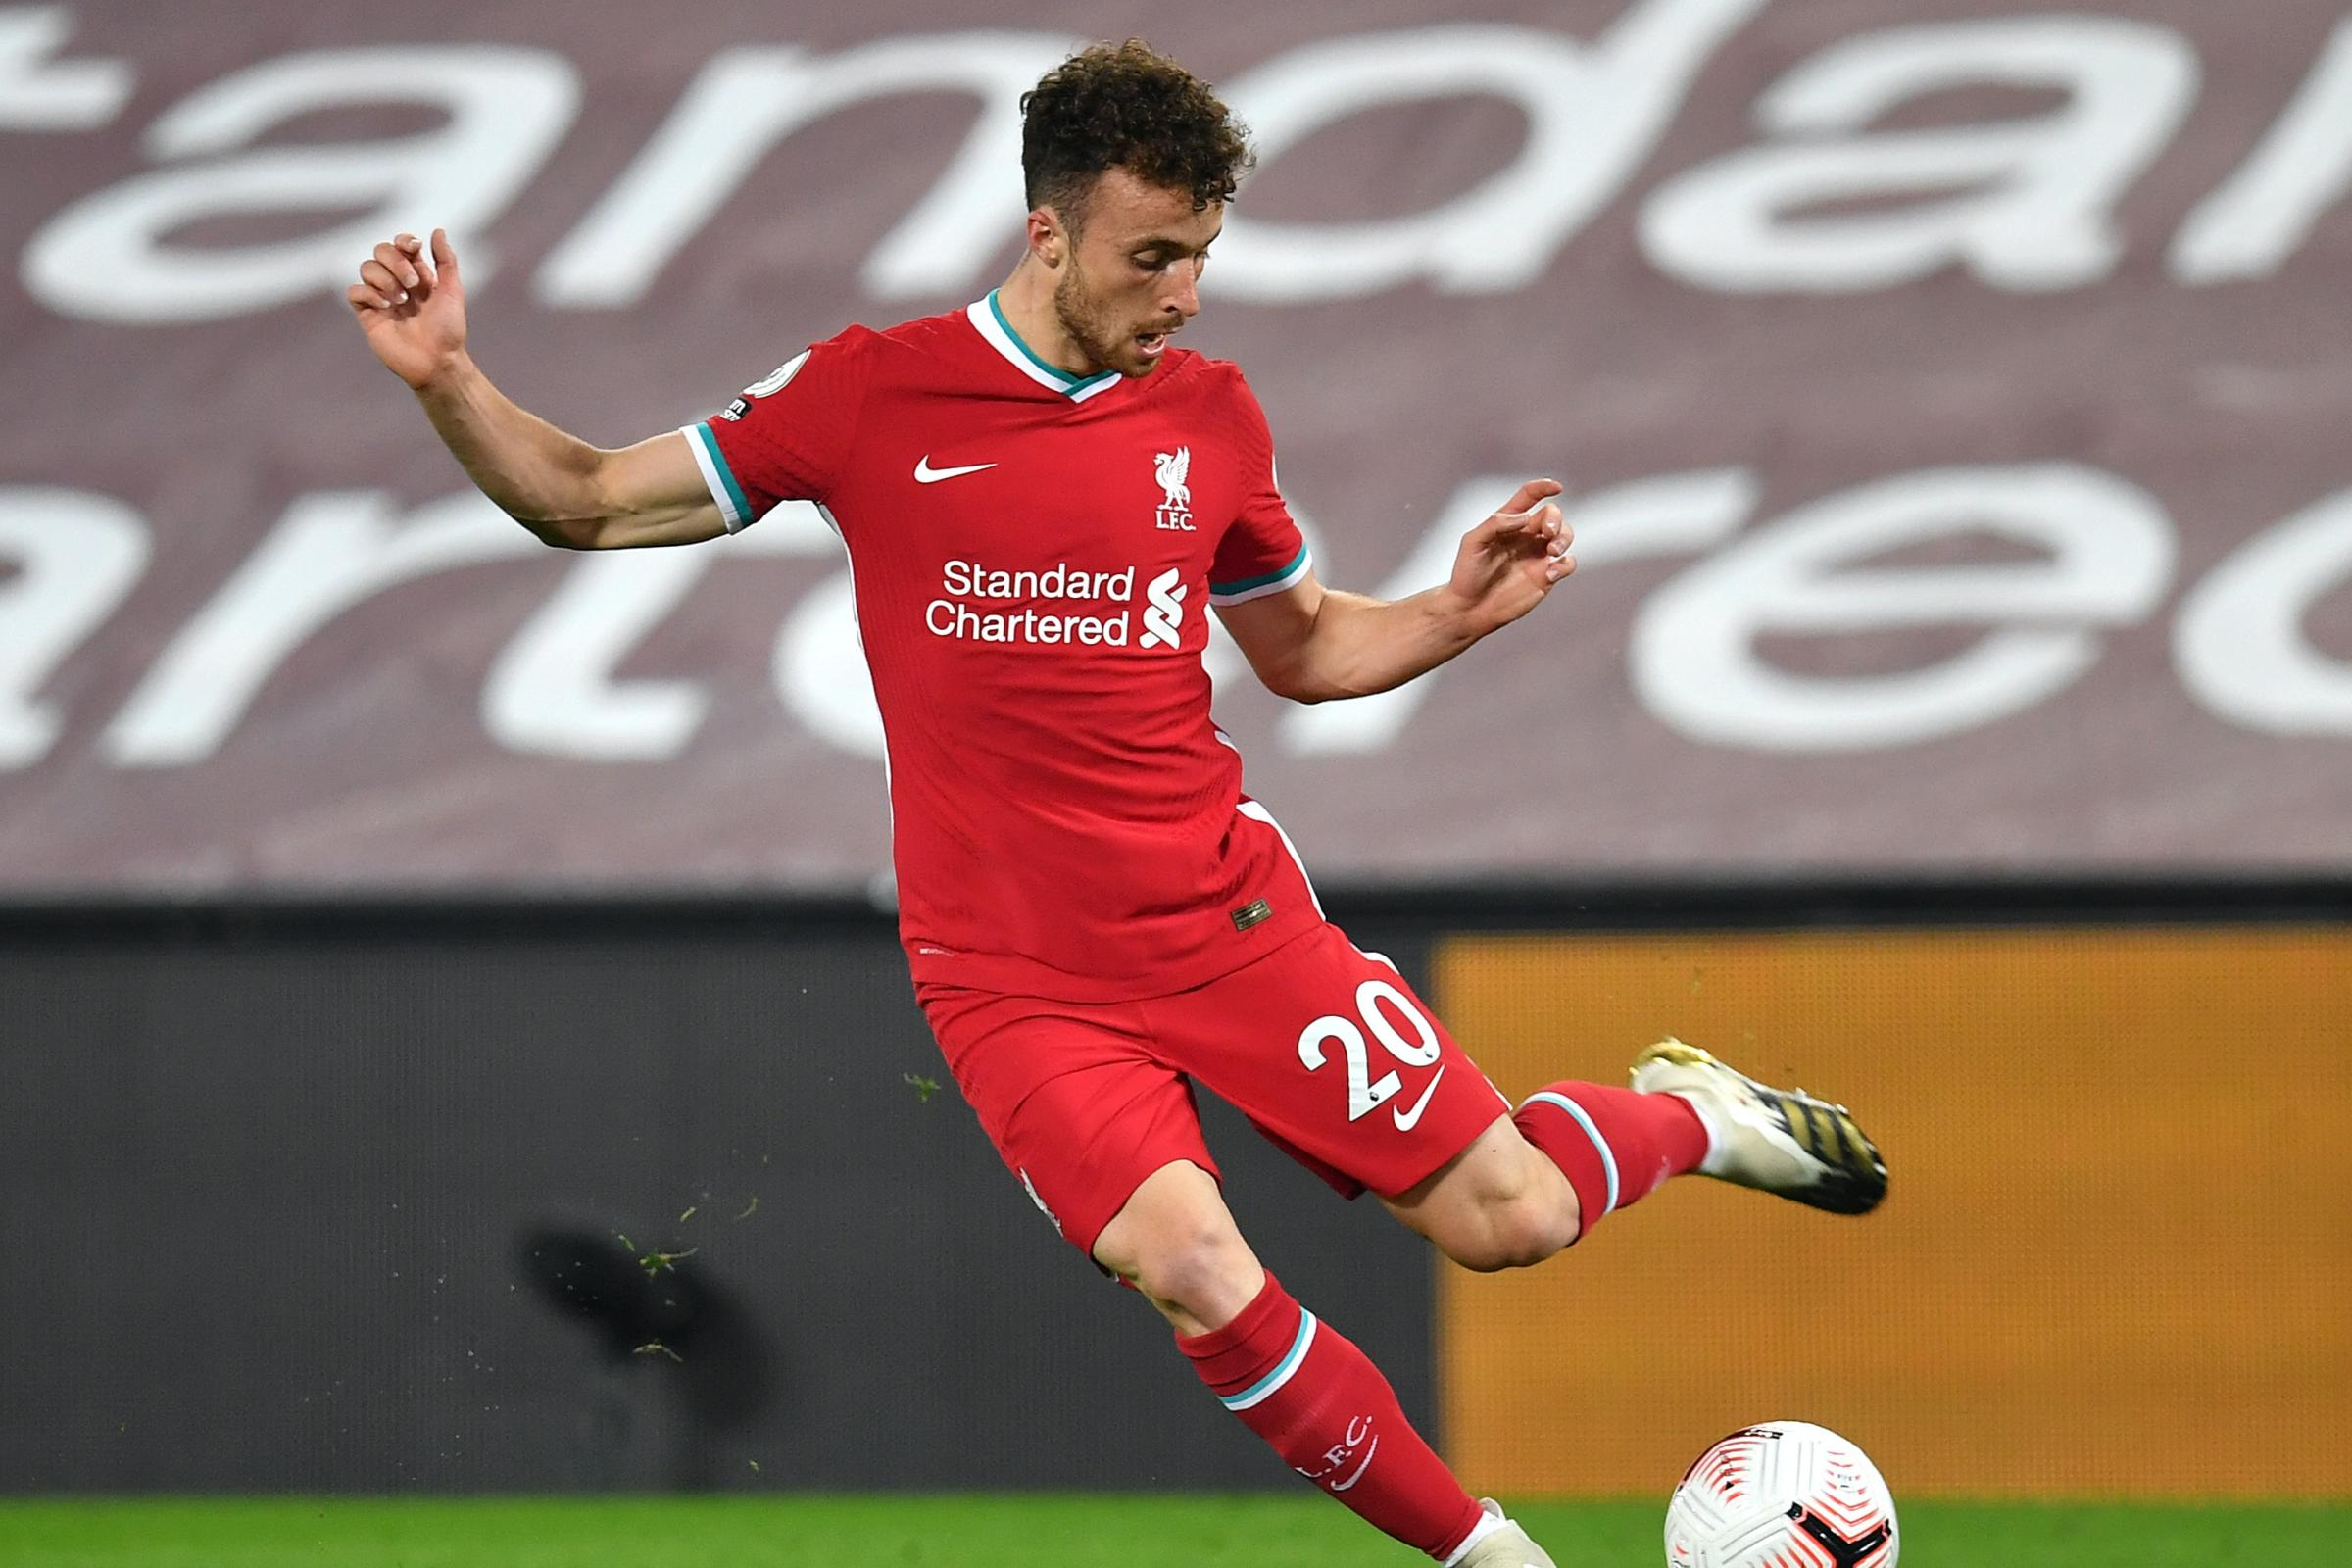 liverpool manager jurgen klopp feels diogo jota can learn a lot from sadio mane county times liverpool manager jurgen klopp feels